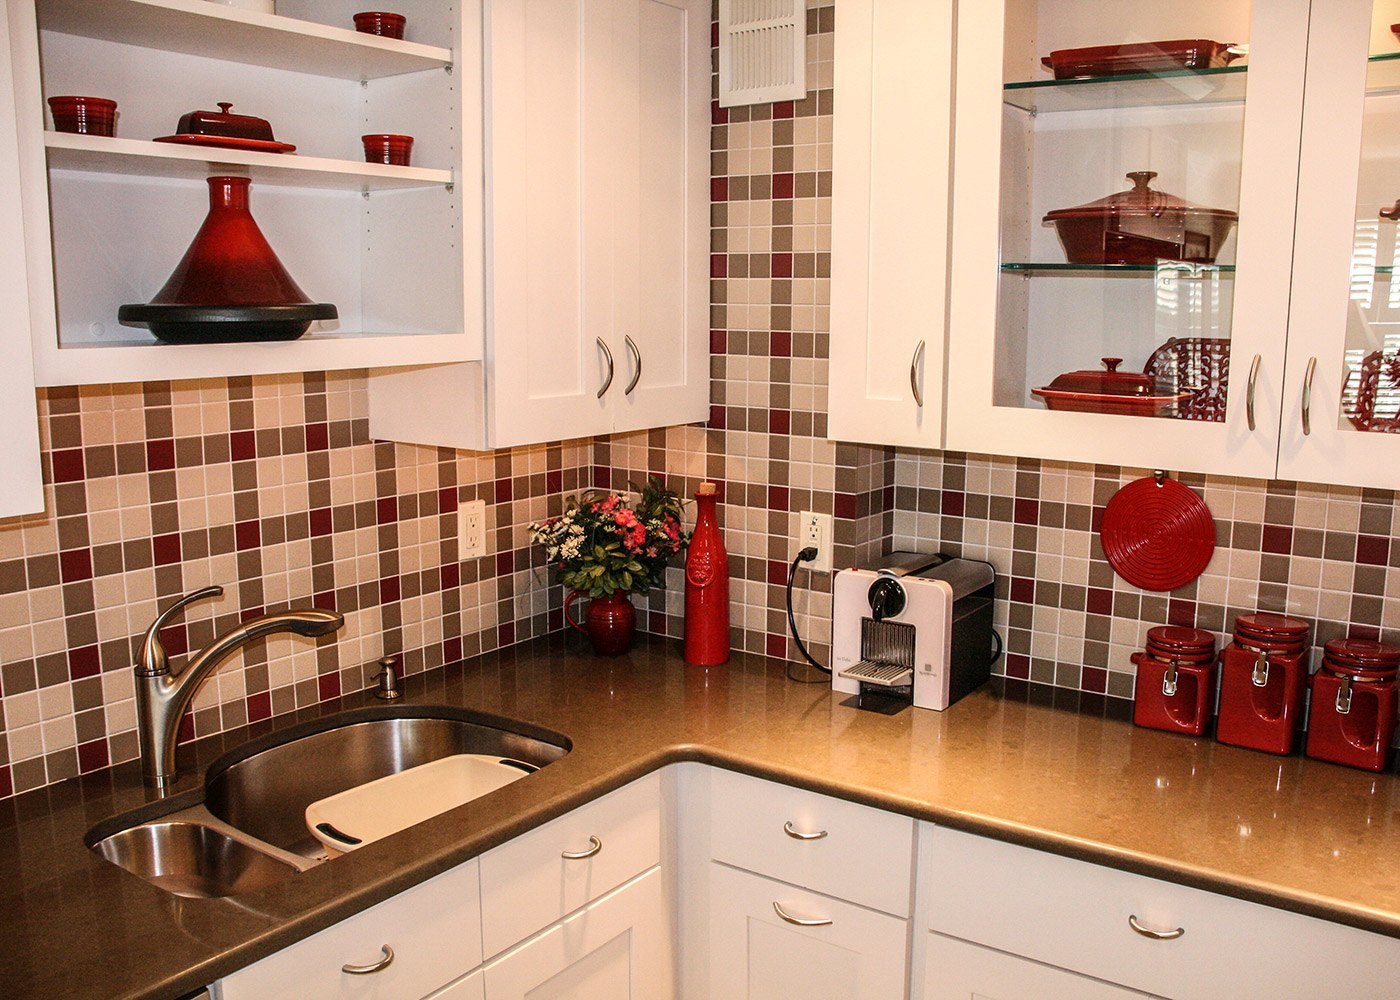 B&q Kitchen Design Jobs Yelp Reviews